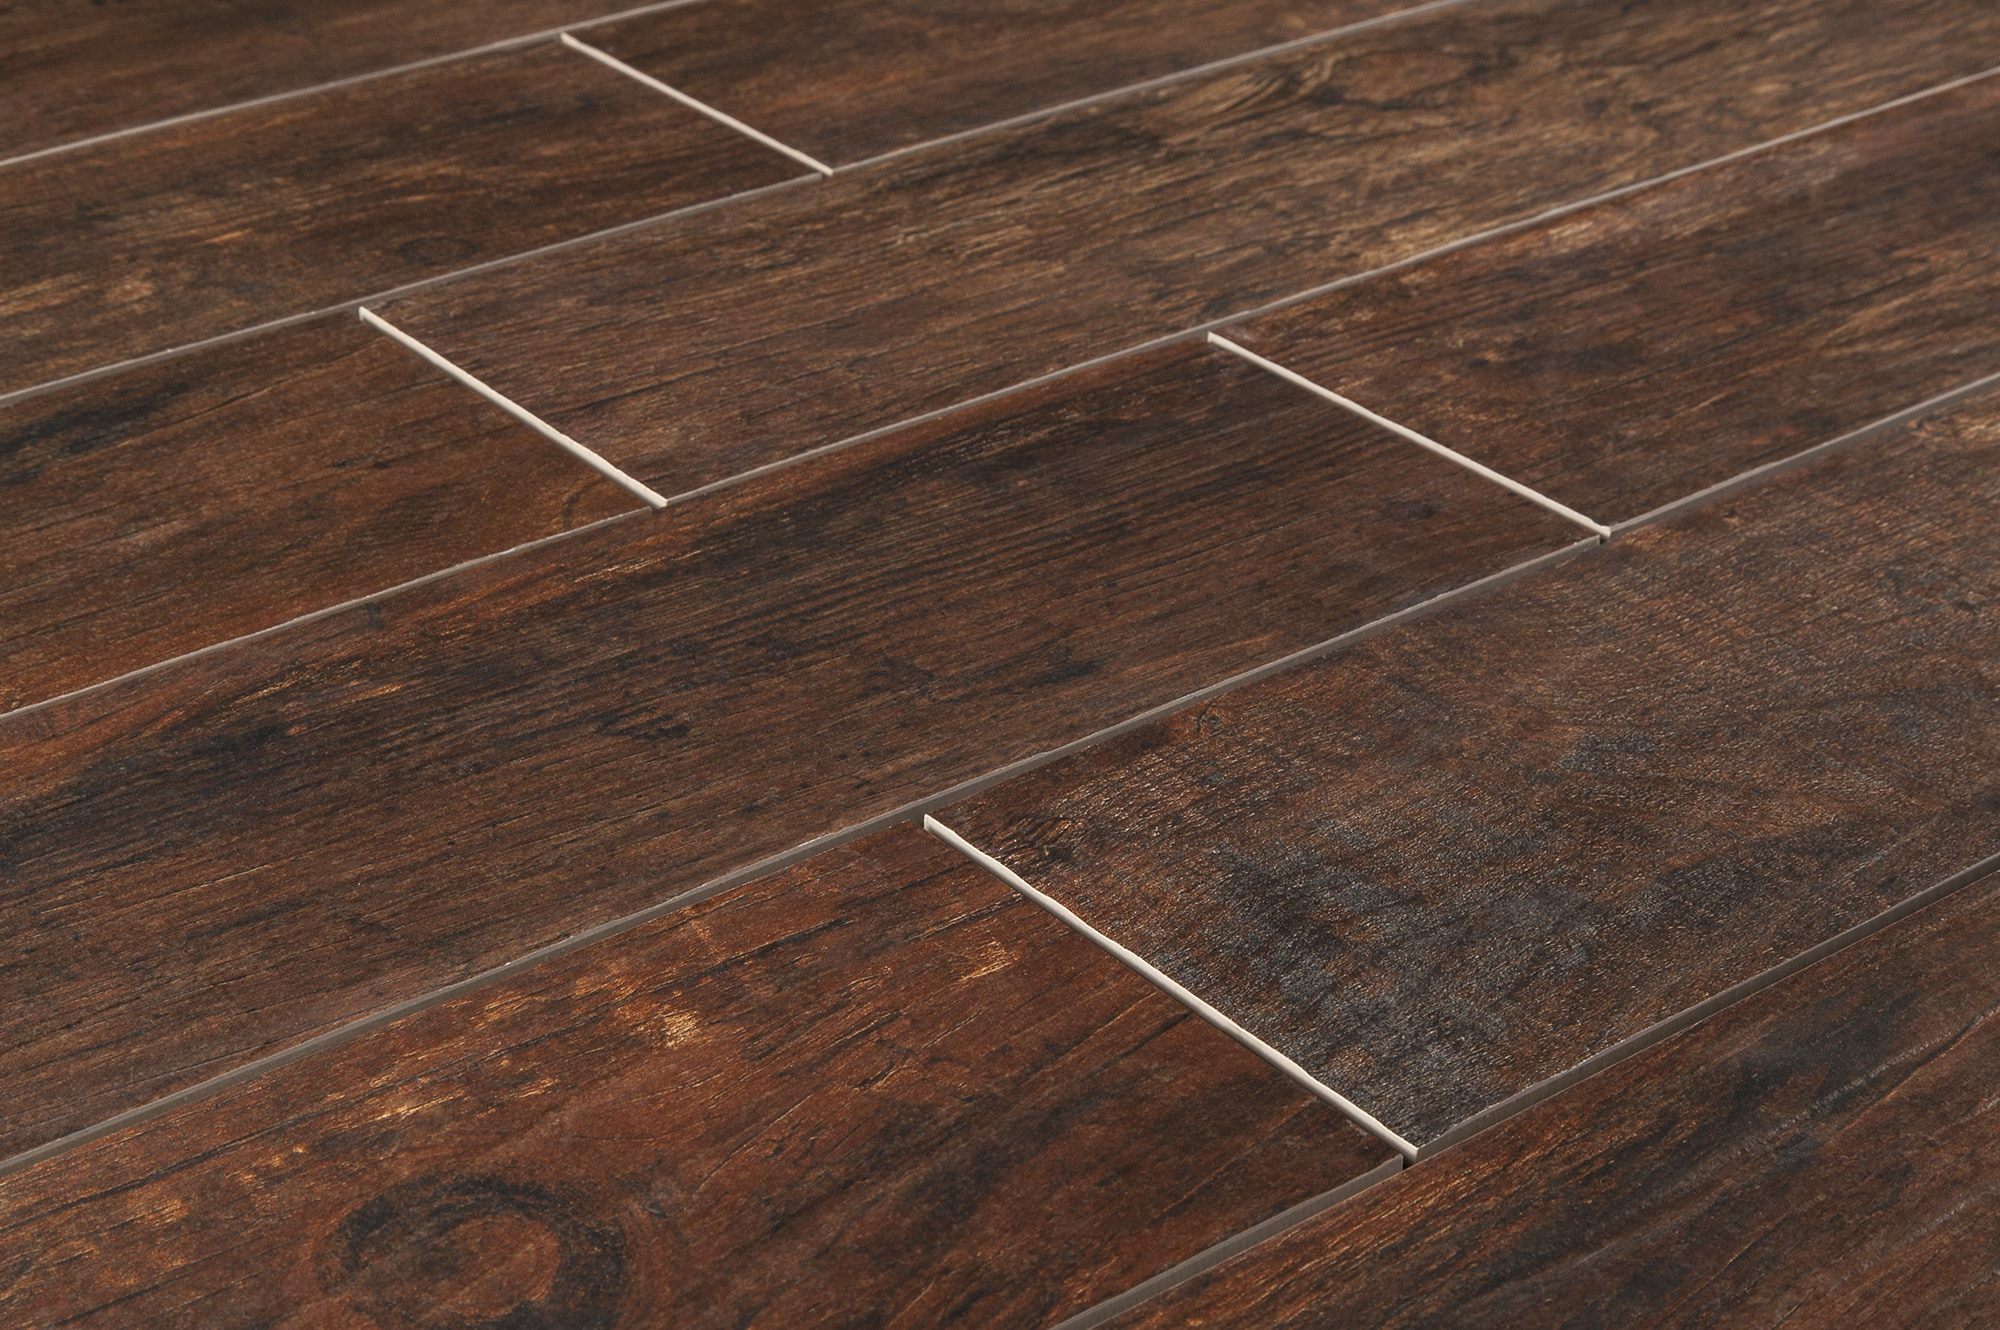 Mahogany angle Tile wood floors